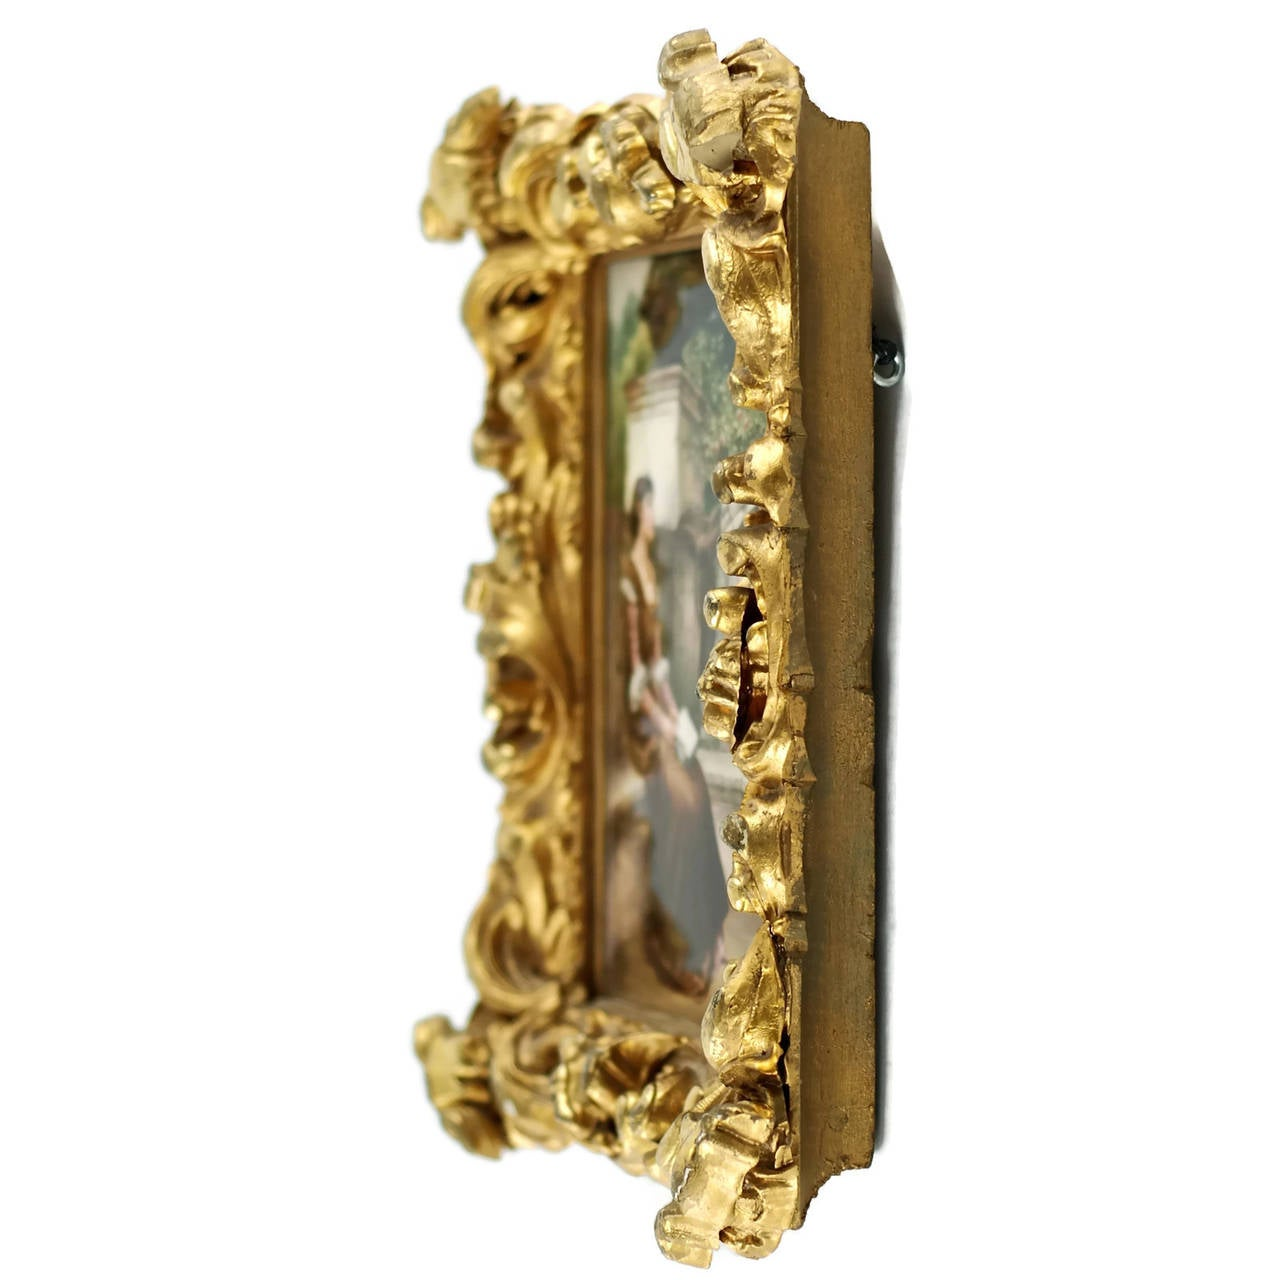 Late 19th Century 19th Century KPM Plaque Signed by Wagner in Giltwood Frame, 'Erinnerungen' For Sale